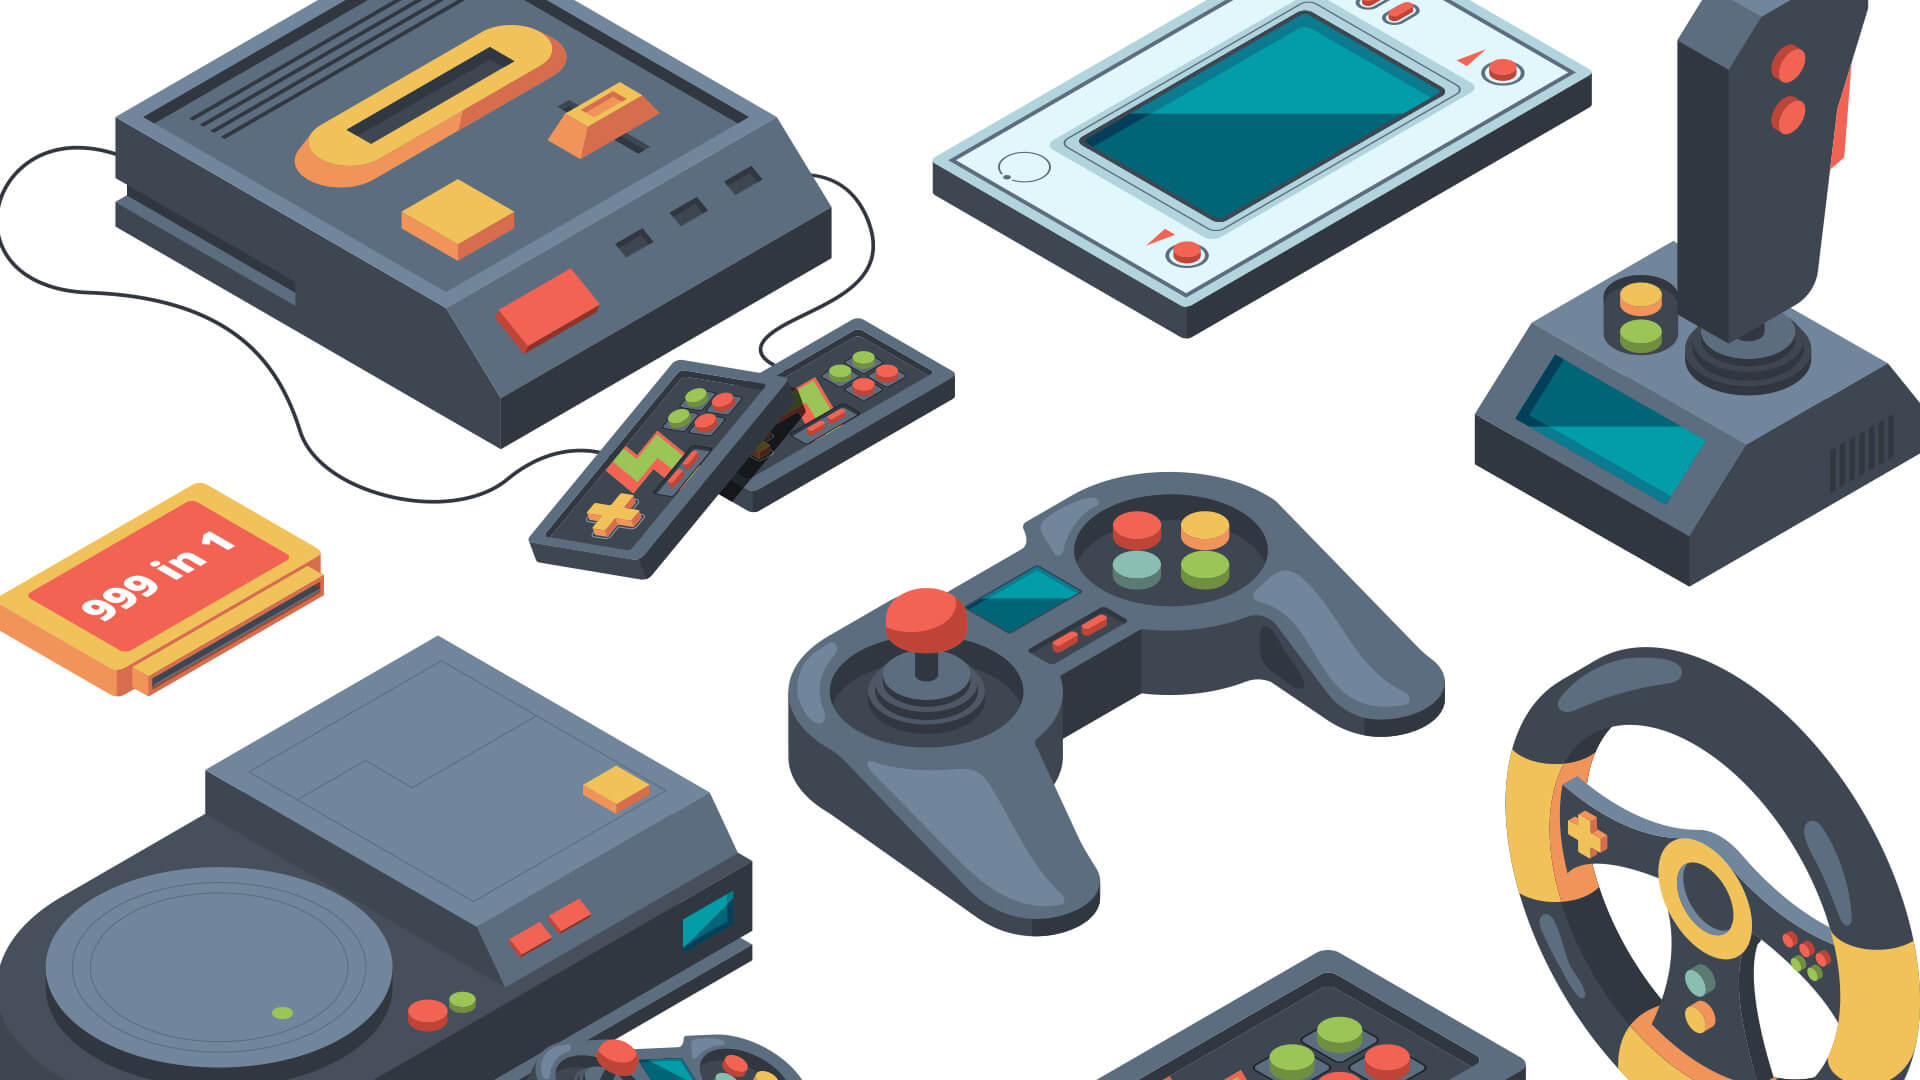 Collection of retro and modern video game consoles